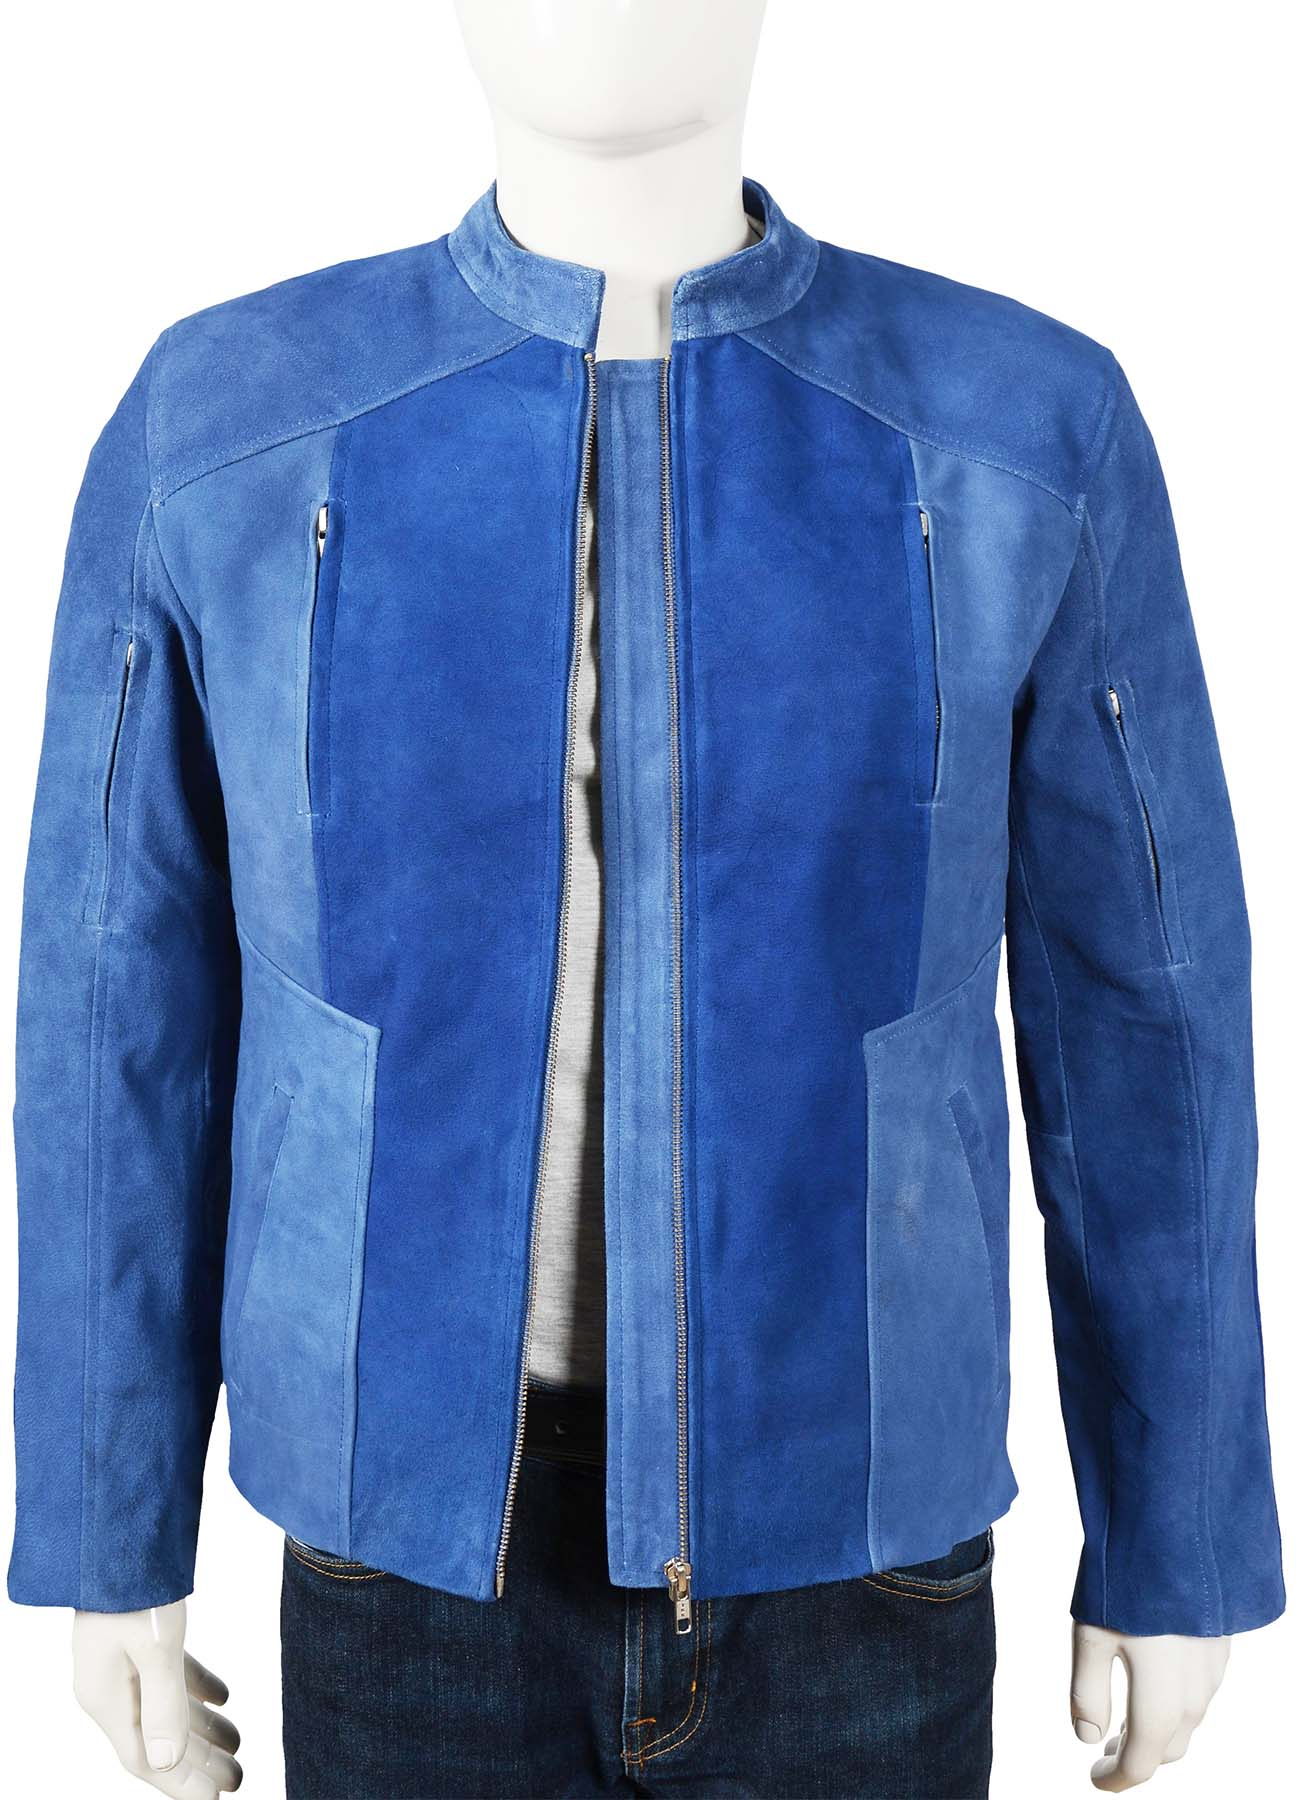 High Quality Blue Suede Leather Jacket